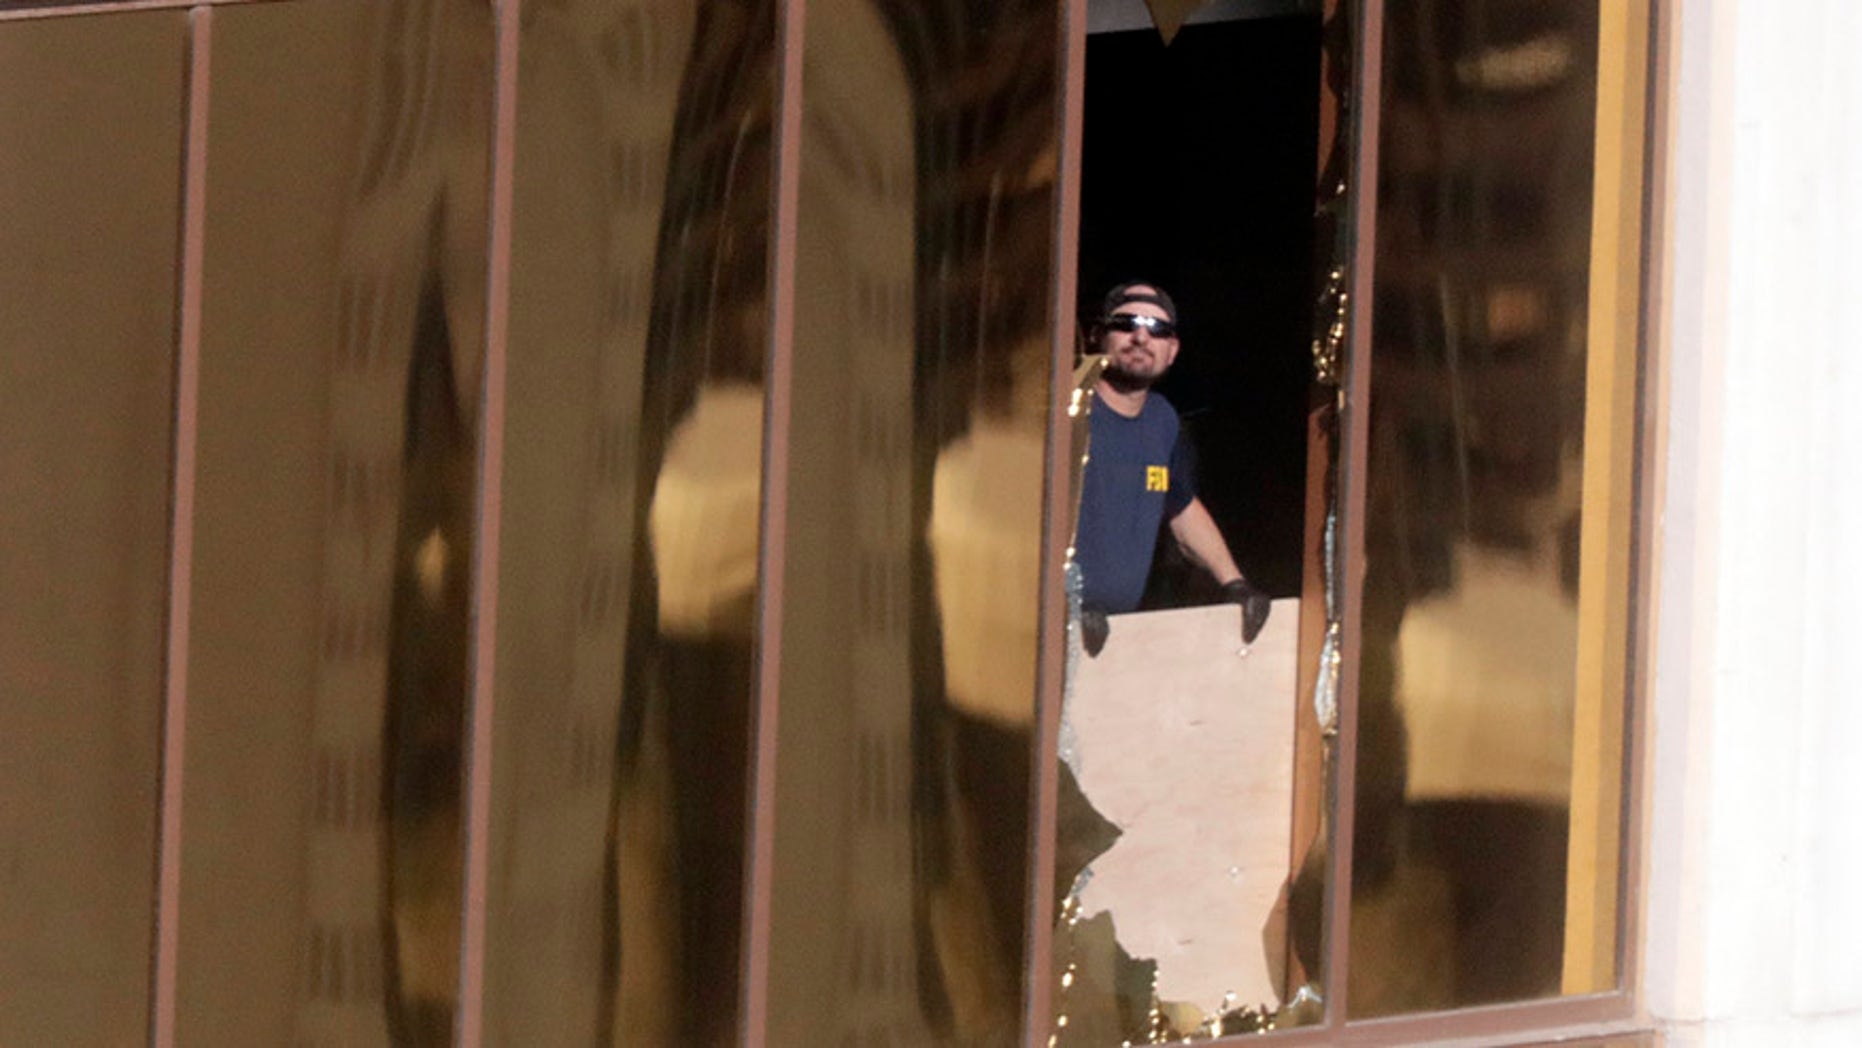 Stephen Paddock broke the windows in his suite in order to use the room as a firing perch.